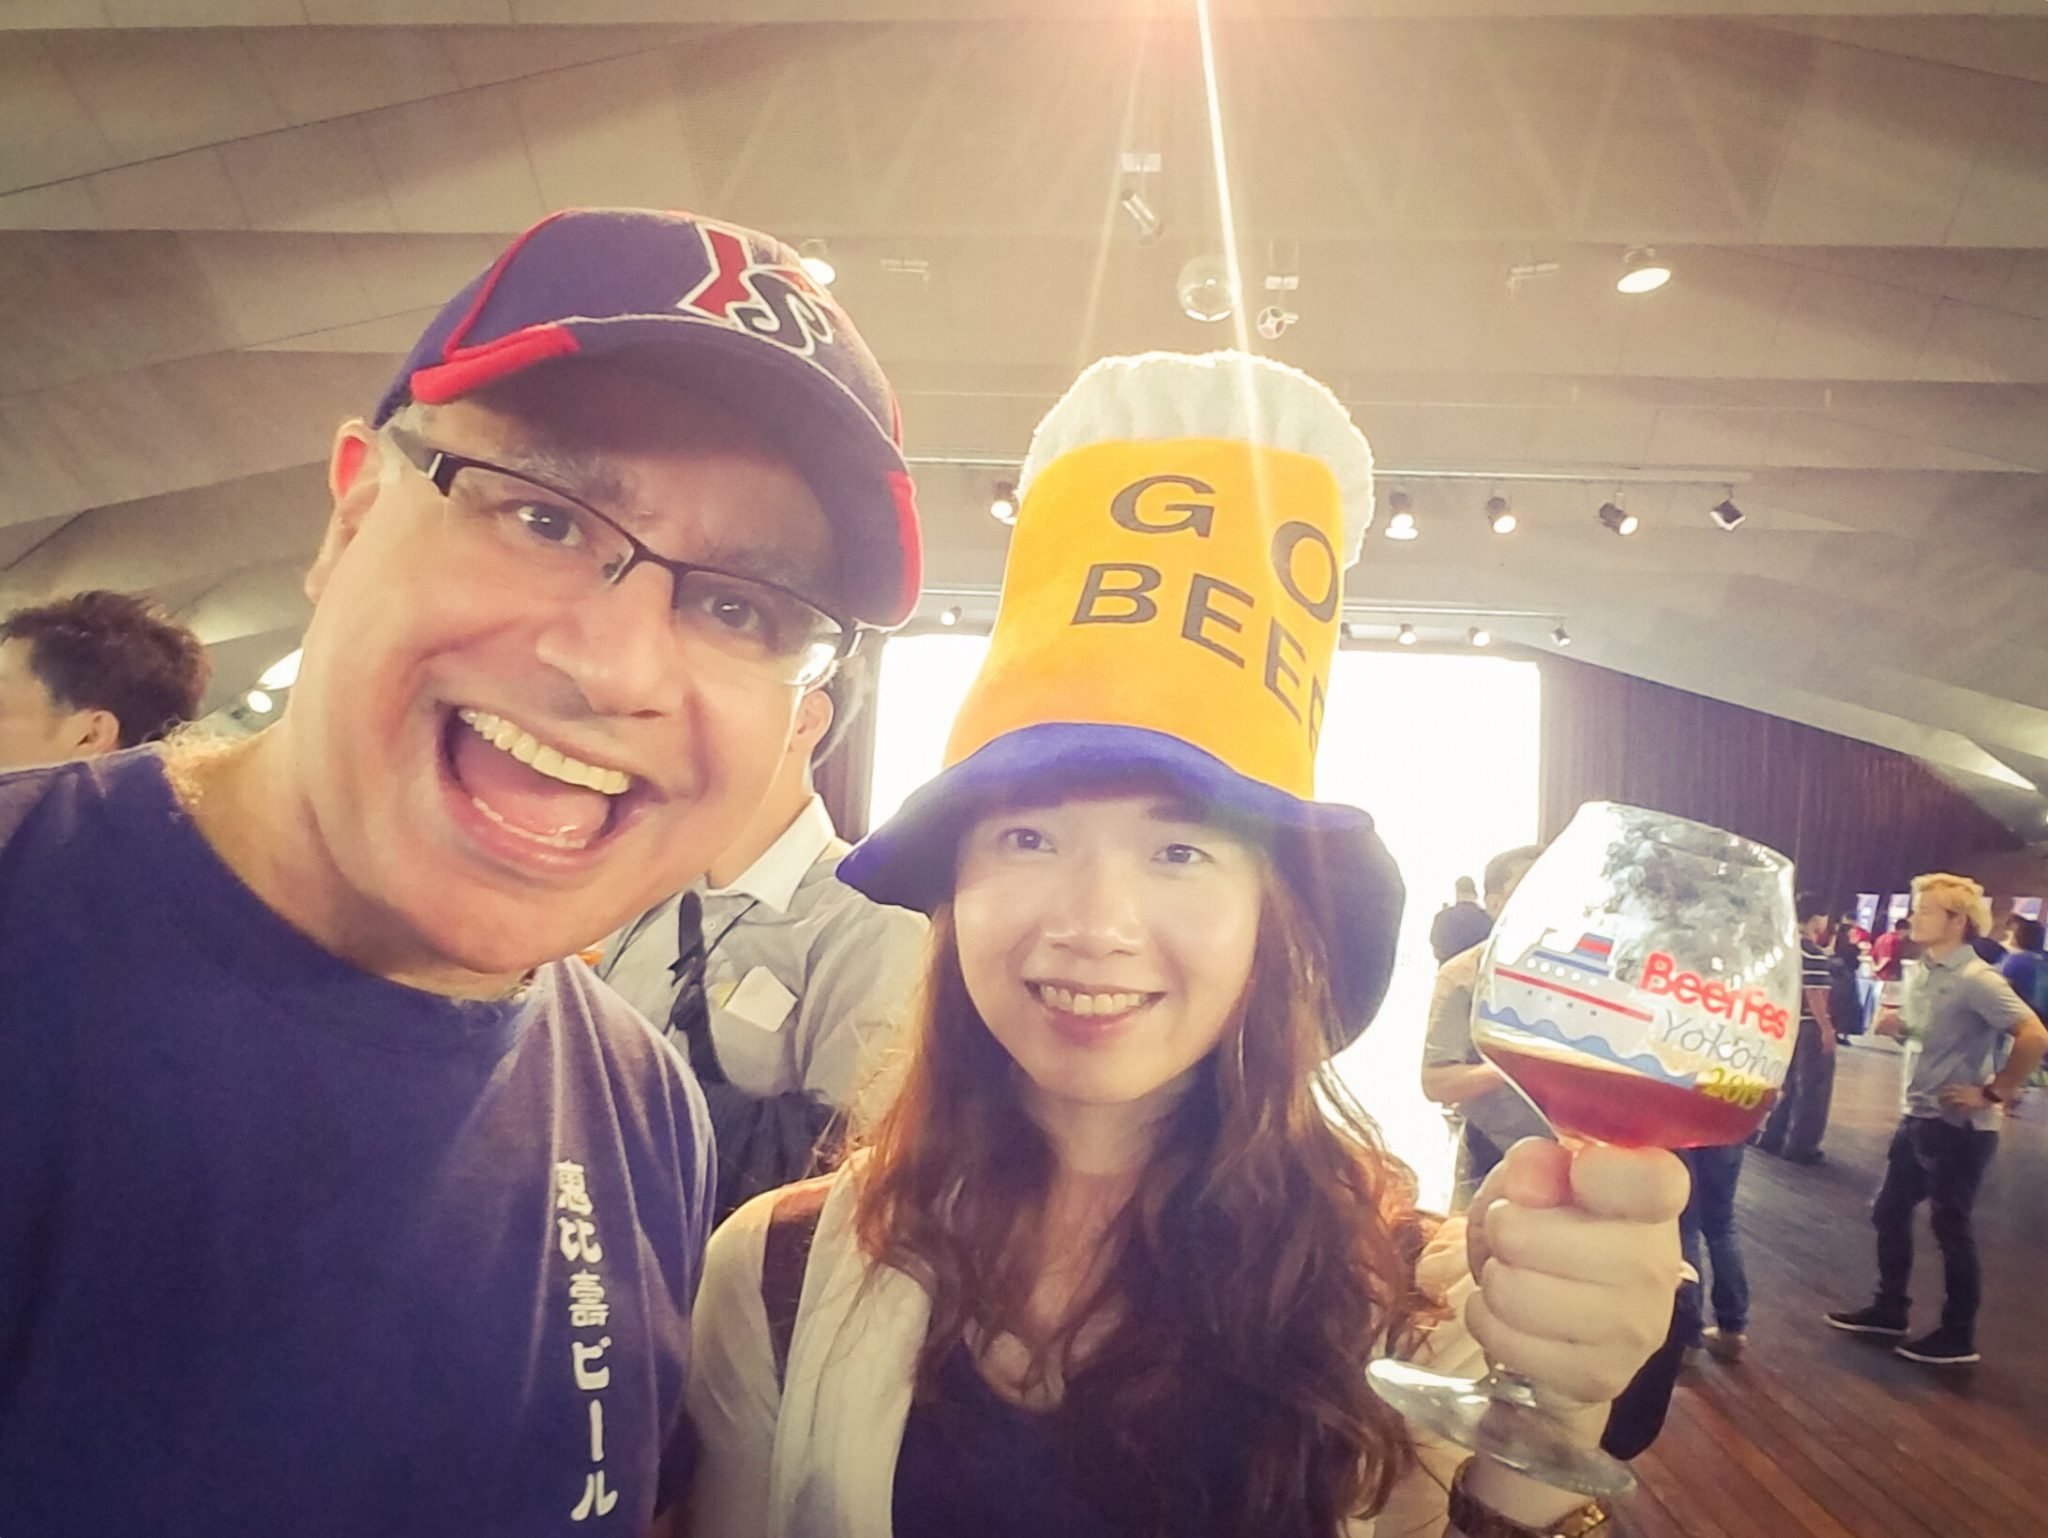 Mac, Founder and Lead Guide of Maction Planet, with Beer-loving friends at BeerFes Yokohama 2019